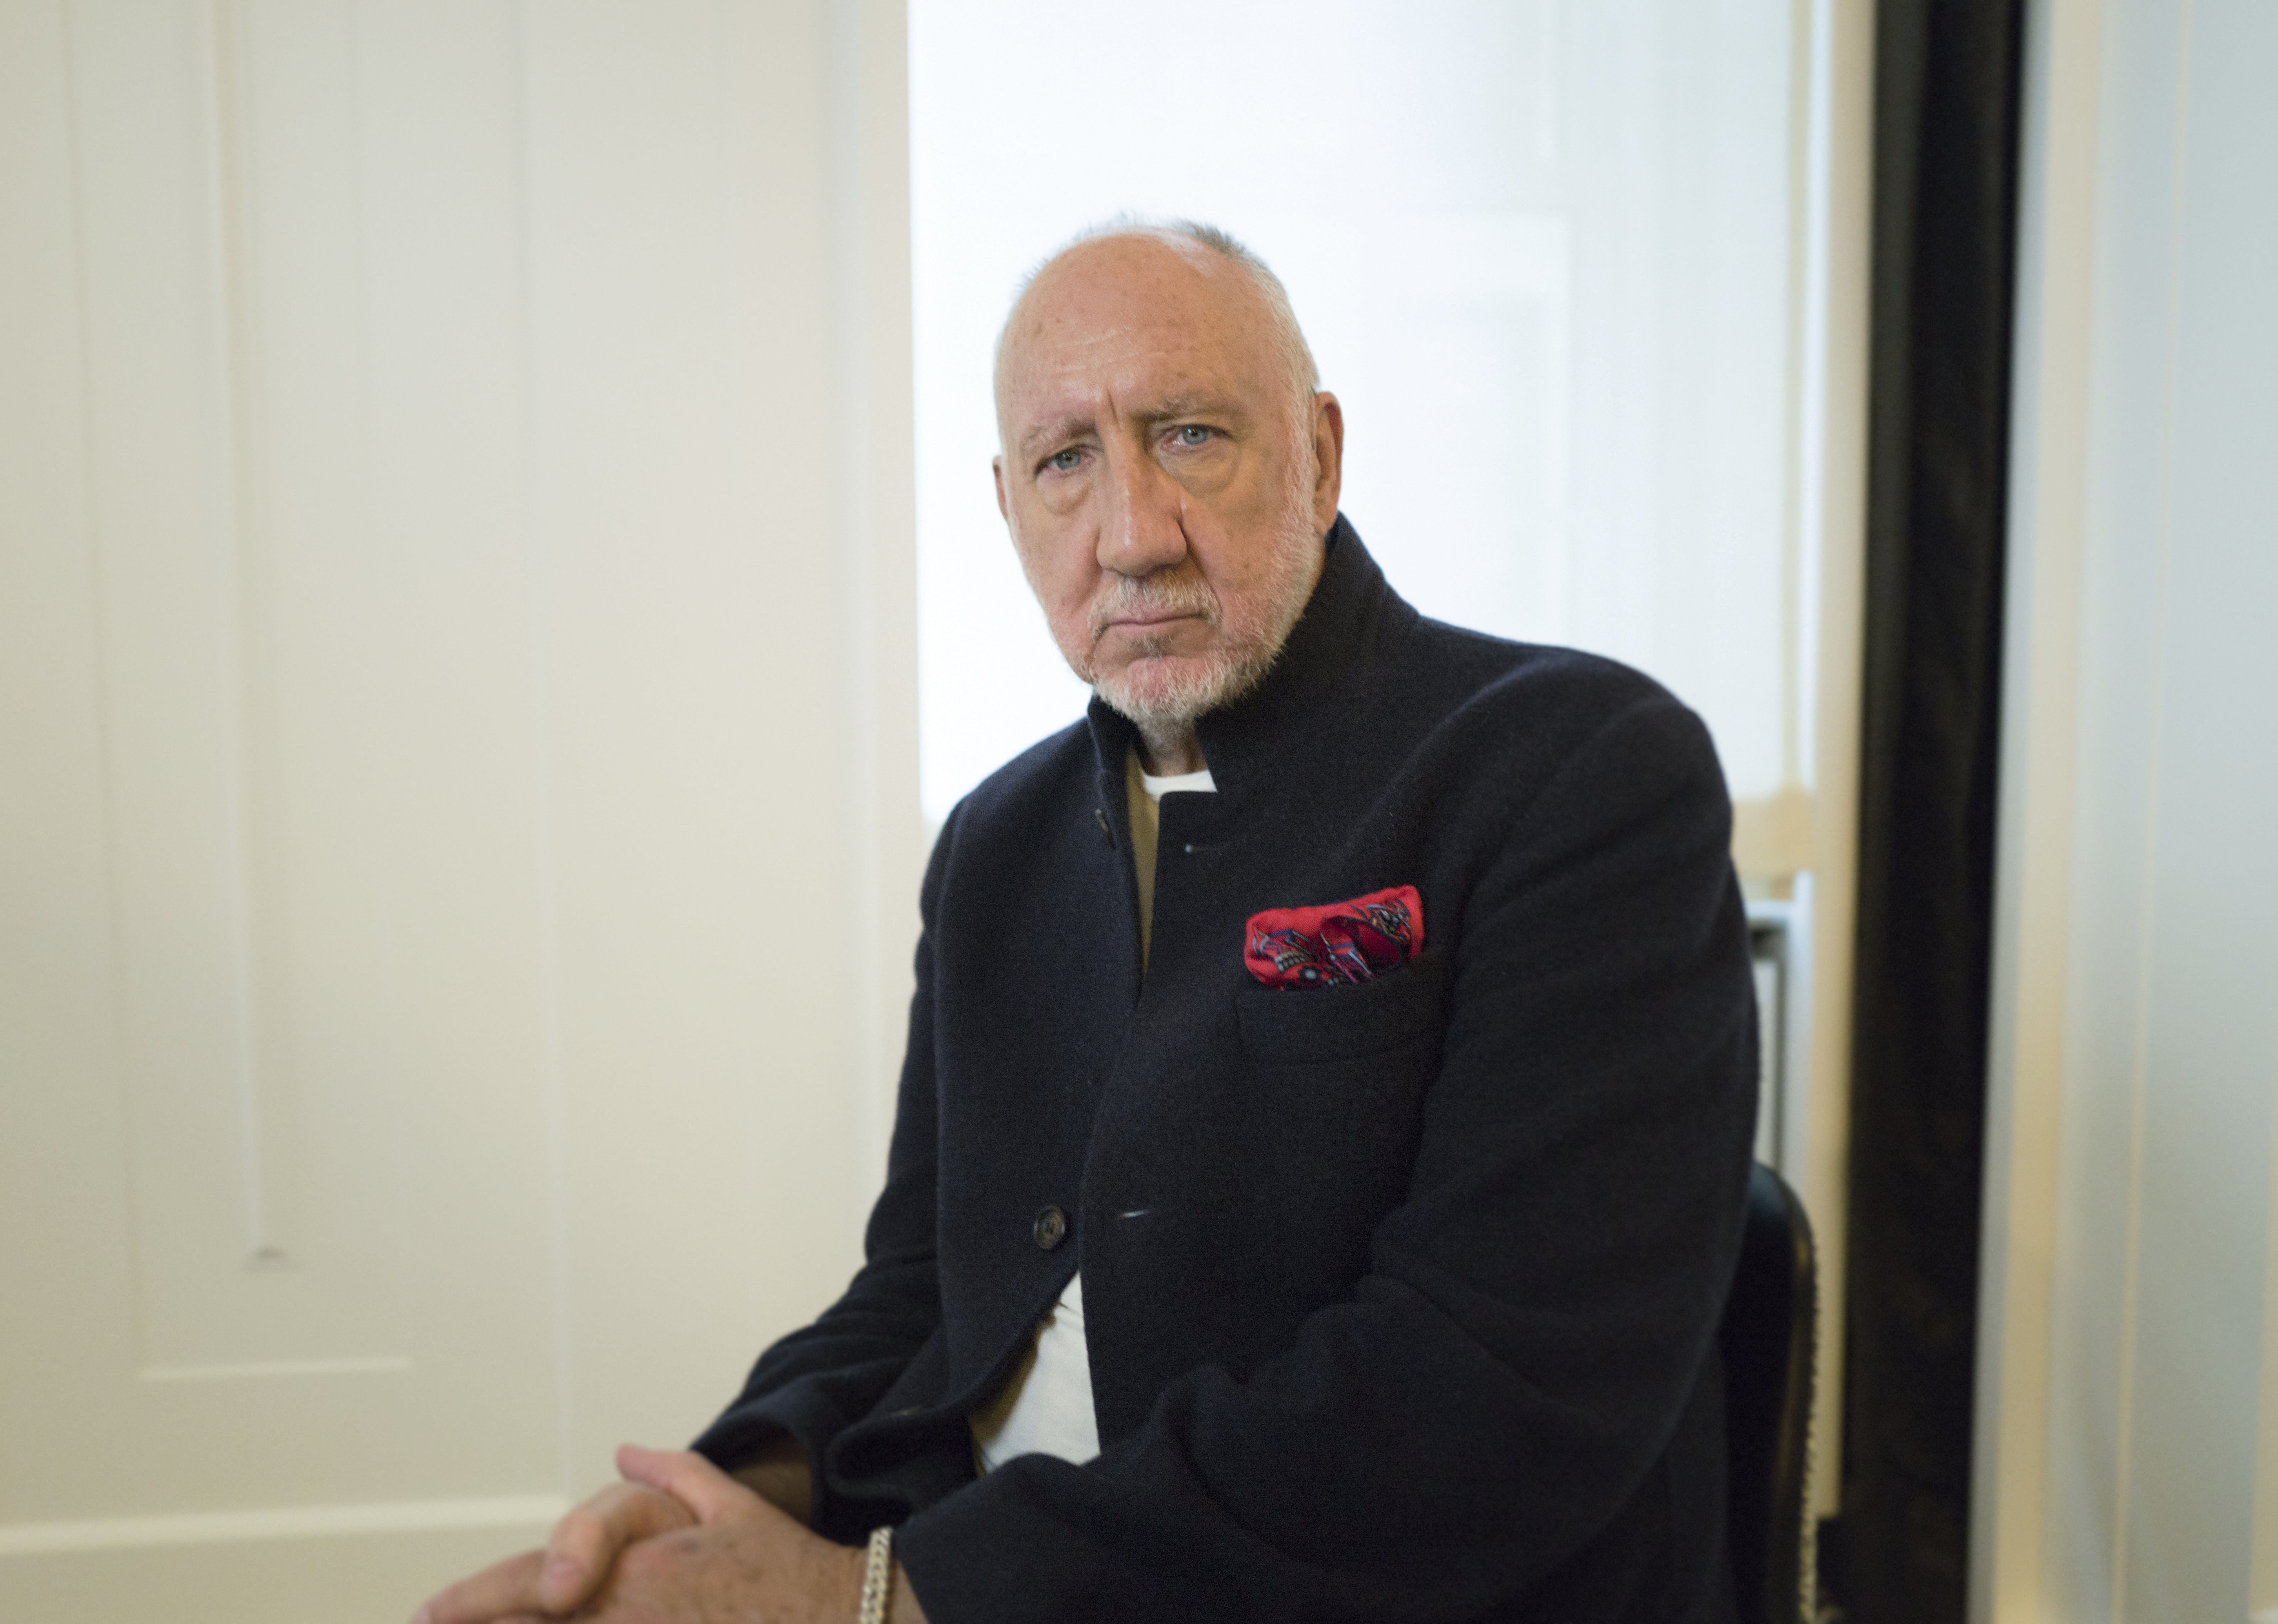 """This Oct. 31, 2019 photo shows author-singer Pete Townshend posing for a portrait in New York to promote his debut novel """"The Age of Anxiety."""" Townshend, a member of the British rock band The Who, said the band plans to return to Cincinnati for the first time since the 1979 tragedy where 11 fans died in a frantic stampede at their concert. (Photo by Matt Licari/Invision/AP)"""